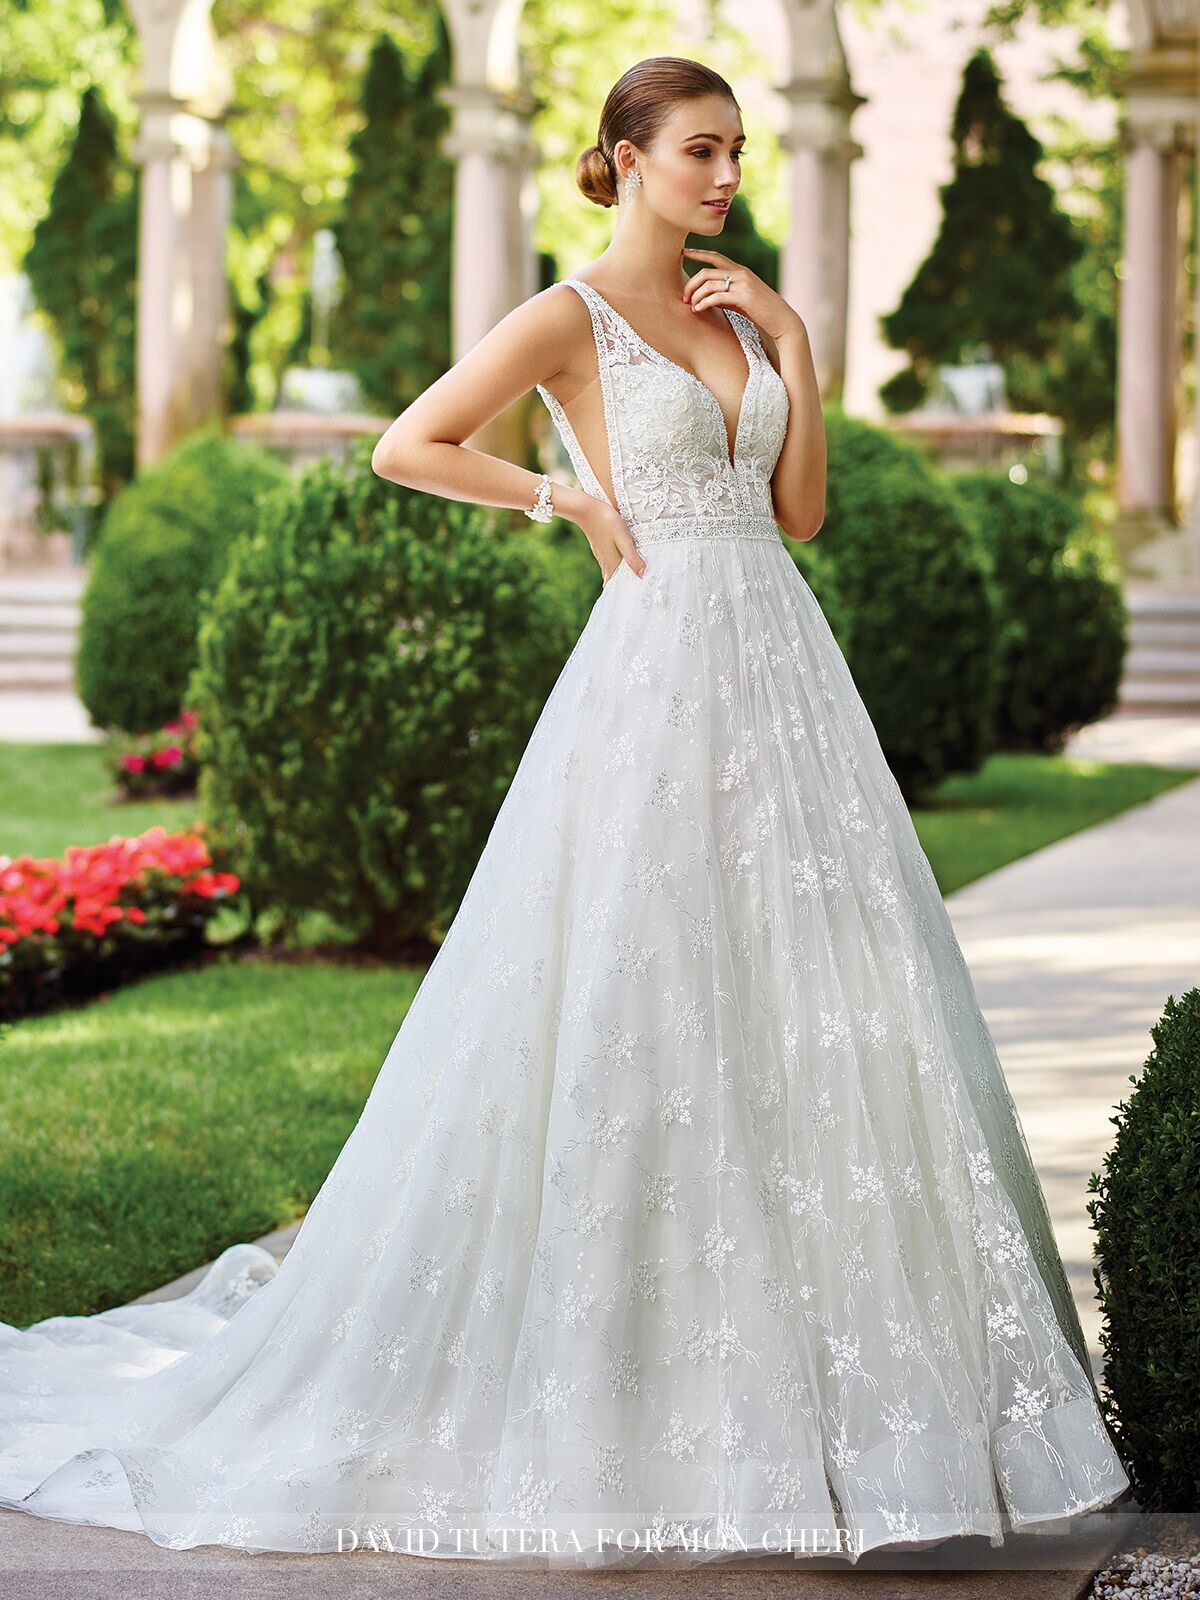 Bridal Salons in Cleveland, OH - The Knot